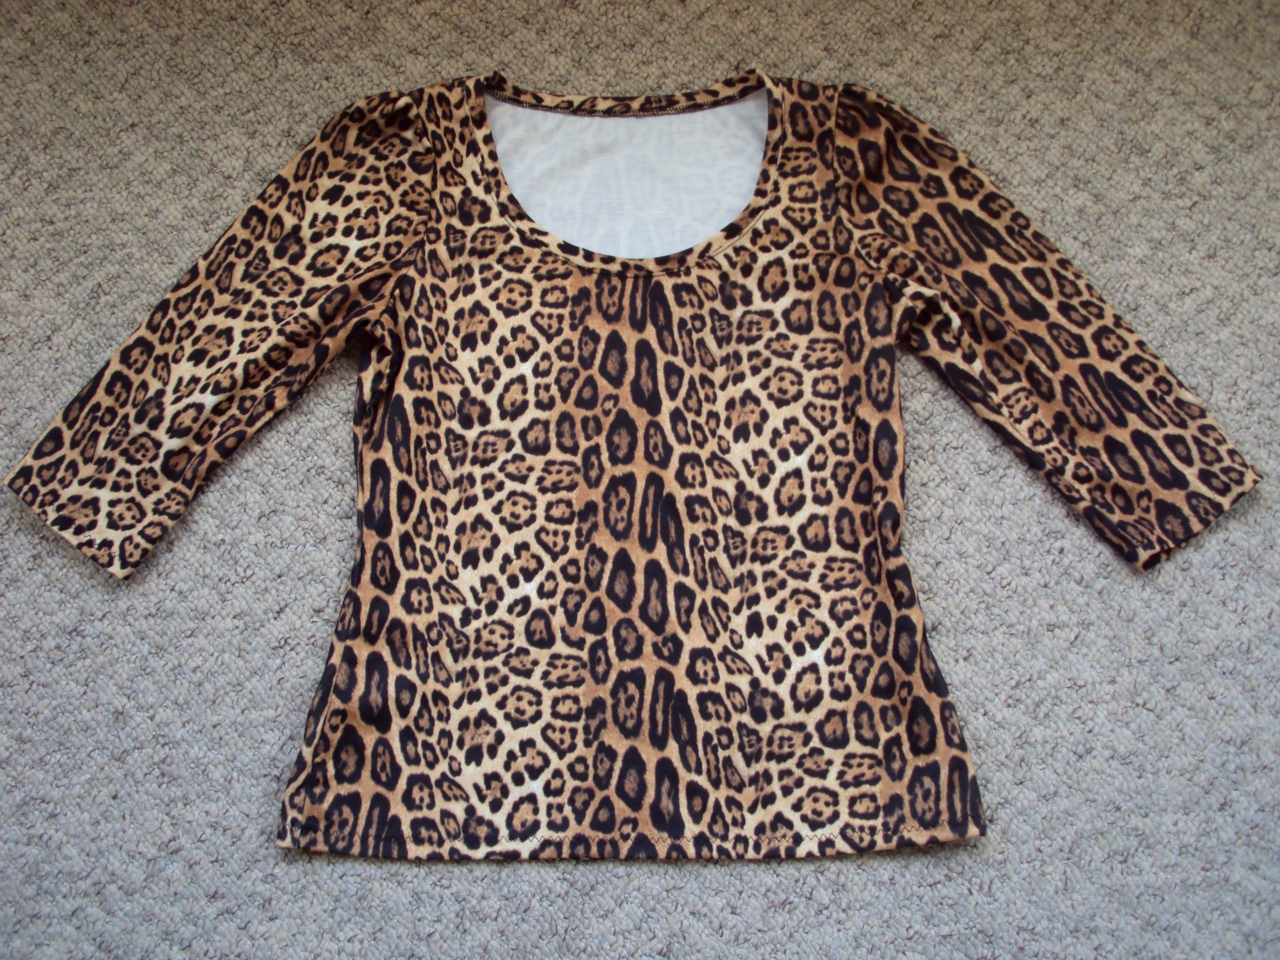 06ab02aa6 This creation used the stretchier of the jerseys. It was donated, along  with a ton of other less appealing animal printed sample fabric, to the  charity I ...